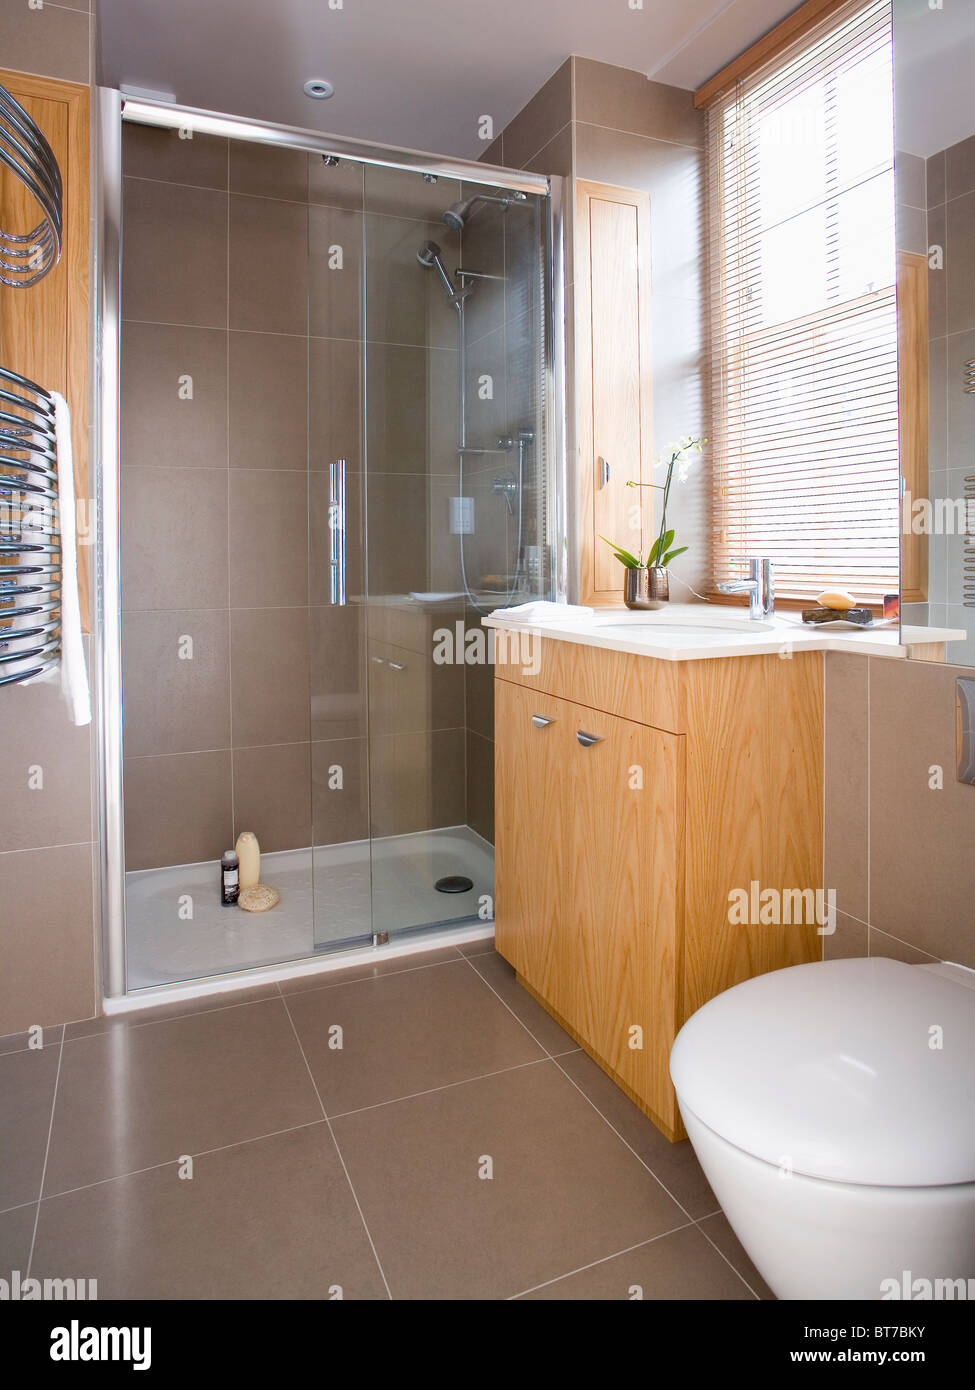 Glass Doors On Large Walk In Shower In Modern Bathroom With Beige Tiled  Floor And Slatted Wooden Blind